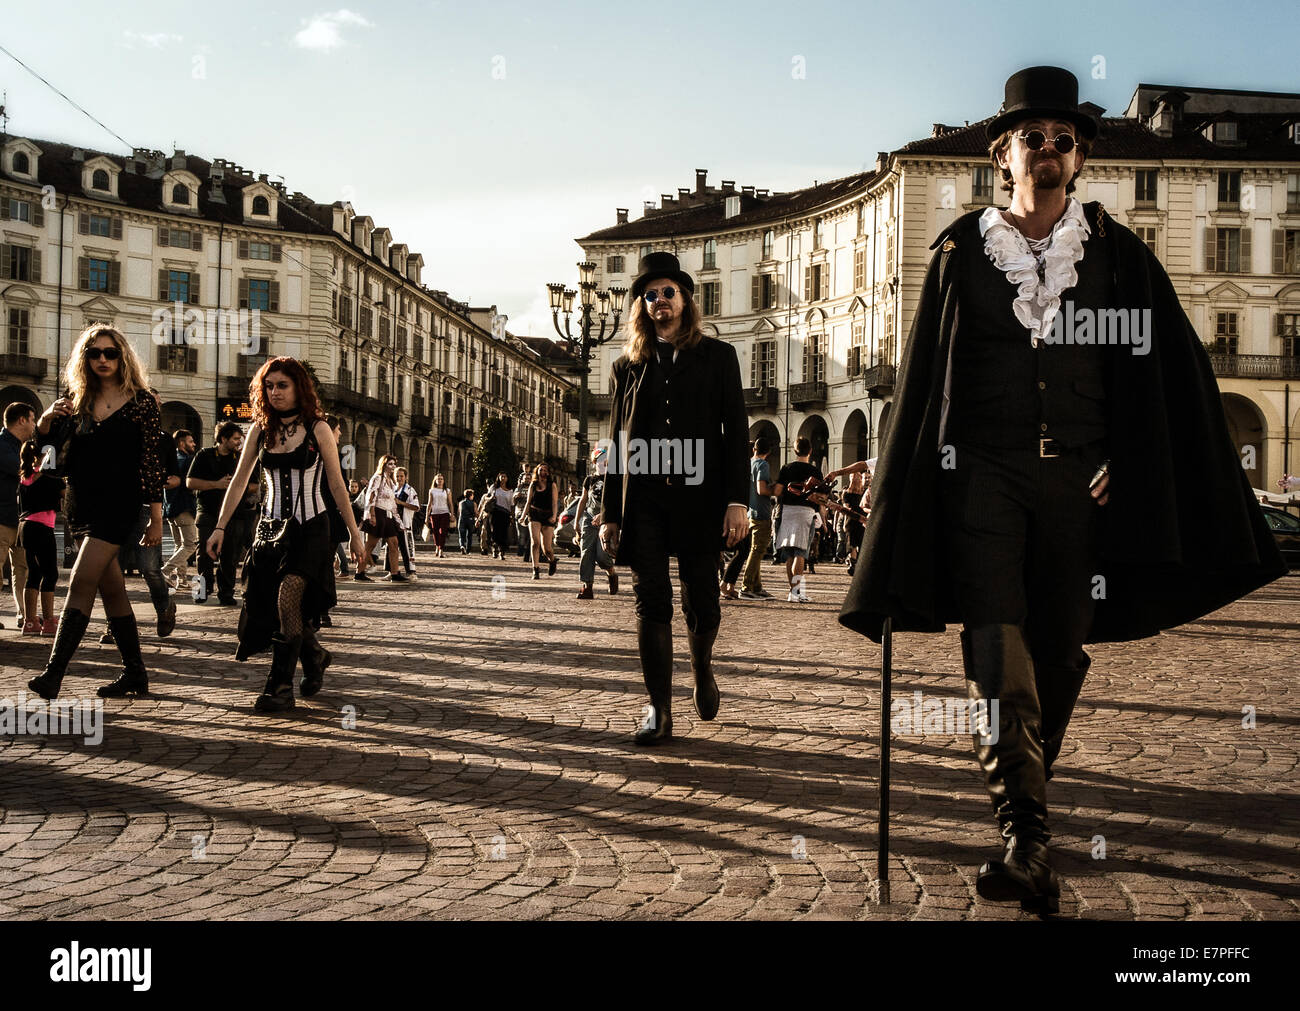 Turin, Italy. 21st Sep, 2014. Zombie Walk in Turin, Italy. Credit:  Realy Easy Star/Alamy Live News - Stock Image